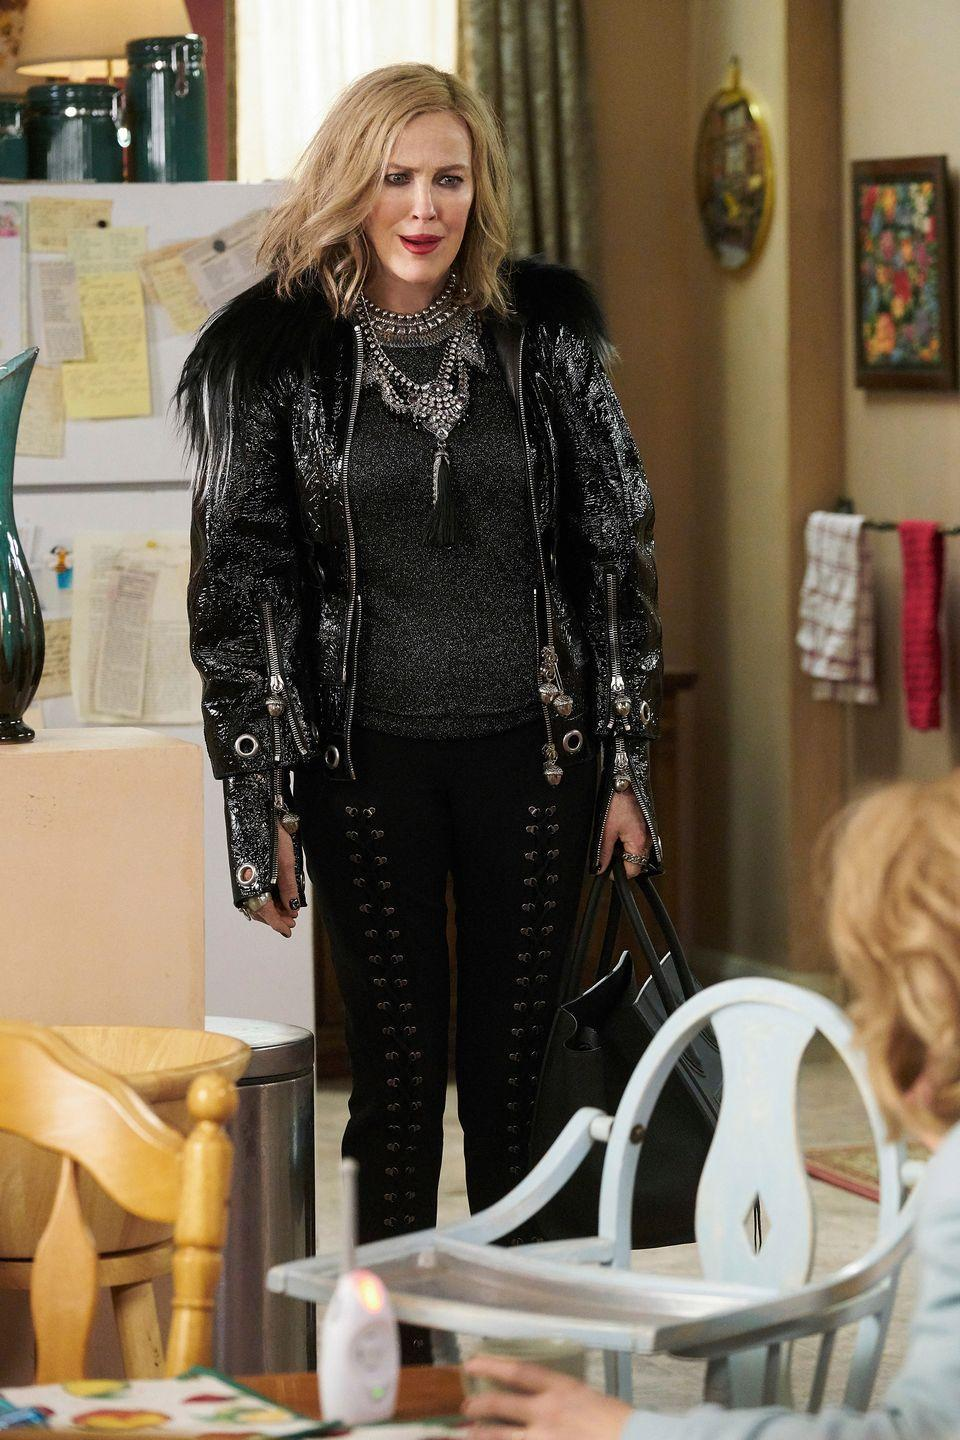 """<p><strong>Tip</strong>: Don't be afraid to go all out. This is Moira Rose; of course she's not afraid of a fashion risk. Also a wig is a given, but any fan of the show knows you have plenty of options to choose from. </p><p><em>Banana Republic gunmetal metallic sweater, $55</em></p><p><a class=""""link rapid-noclick-resp"""" href=""""https://go.redirectingat.com?id=74968X1596630&url=https%3A%2F%2Fbananarepublic.gap.com%2Fbrowse%2Fproduct.do%3Fpid%3D518926002%26vid%3D1%23pdp-page-content&sref=https%3A%2F%2Fwww.marieclaire.com%2Ffashion%2Fg33216949%2Fpop-culture-halloween-costumes%2F"""" rel=""""nofollow noopener"""" target=""""_blank"""" data-ylk=""""slk:Shop it"""">Shop it</a></p><p><em>A.L.C black lace-up pants, $158</em></p><p><a class=""""link rapid-noclick-resp"""" href=""""https://go.redirectingat.com?id=74968X1596630&url=https%3A%2F%2Fwww.saksoff5th.com%2Fproduct%2Fa.l.c.-kingsley-lace-up-pants-0400010711293.html%3Fsite_refer%3DNPLA_GGL_Shopping&sref=https%3A%2F%2Fwww.marieclaire.com%2Ffashion%2Fg33216949%2Fpop-culture-halloween-costumes%2F"""" rel=""""nofollow noopener"""" target=""""_blank"""" data-ylk=""""slk:Shop it"""">Shop it</a></p><p><em>7 For All Mankind patent leather jacket with faux fur trim, $208</em></p><p><a class=""""link rapid-noclick-resp"""" href=""""https://go.redirectingat.com?id=74968X1596630&url=https%3A%2F%2Fwww.bloomingdales.com%2Fshop%2Fproduct%2F7-for-all-mankind-faux-fur-trimmed-patent-leather-jacket%3FID%3D3485985%26pla_country%3DUS%26CAGPSPN%3Dpla%26CAAGID%3D85781253985%26CATCI%3Daud-847008262443%253Apla-376640334376%26cm_mmc%3DGoogle-PLA-ADC-_-tROAS_FOB_Campaign-_-yes_i-_-190392650973USA%26gclid%3DCj0KCQjwgJv4BRCrARIsAB17JI5yY3YjXVDfgLanrRqHFrrzgMCiFxgkImR2Vu4SWB7eWkdUR8DAhvkaAsDXEALw_wcB&sref=https%3A%2F%2Fwww.marieclaire.com%2Ffashion%2Fg33216949%2Fpop-culture-halloween-costumes%2F"""" rel=""""nofollow noopener"""" target=""""_blank"""" data-ylk=""""slk:Shop it"""">Shop it</a></p><p><em>Reis Jewelry silver statement necklace, $15</em></p><p><a class=""""link rapid-noclick-resp"""" href=""""https://www.amazon.com/ReisJewelry"""